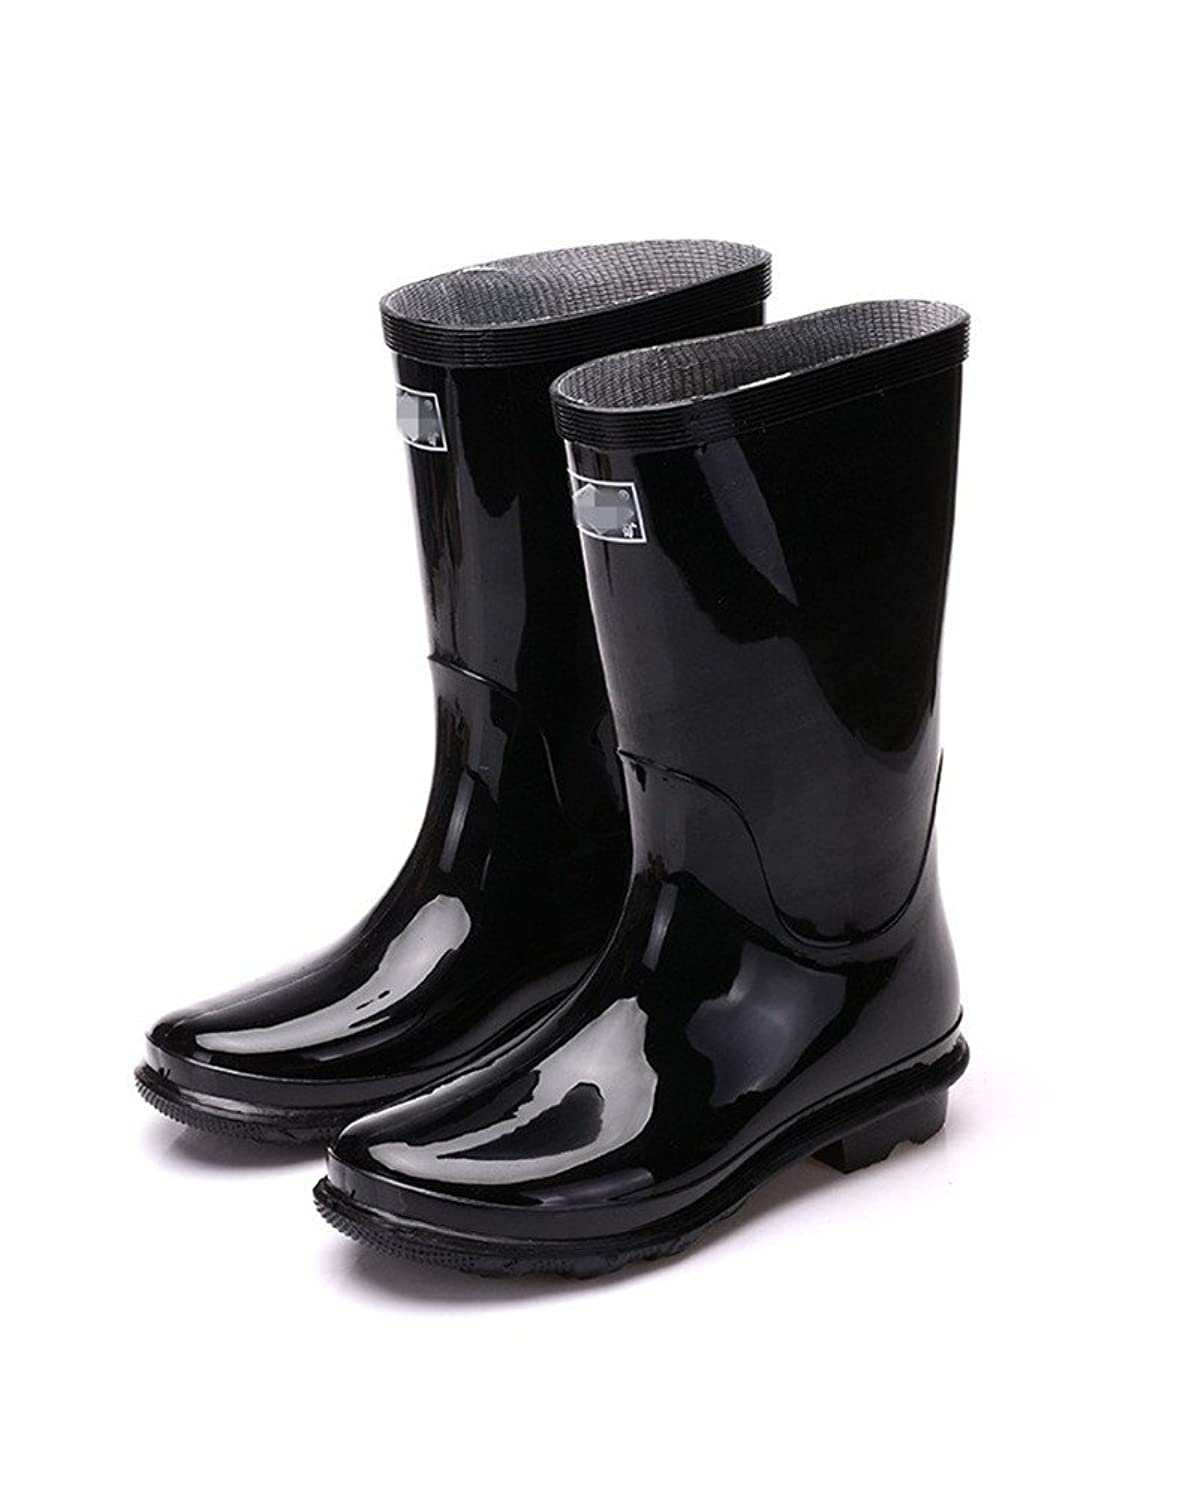 Always Pretty Tall Gloss Black Knee-High Rubber Rain Boot Safety Shoes